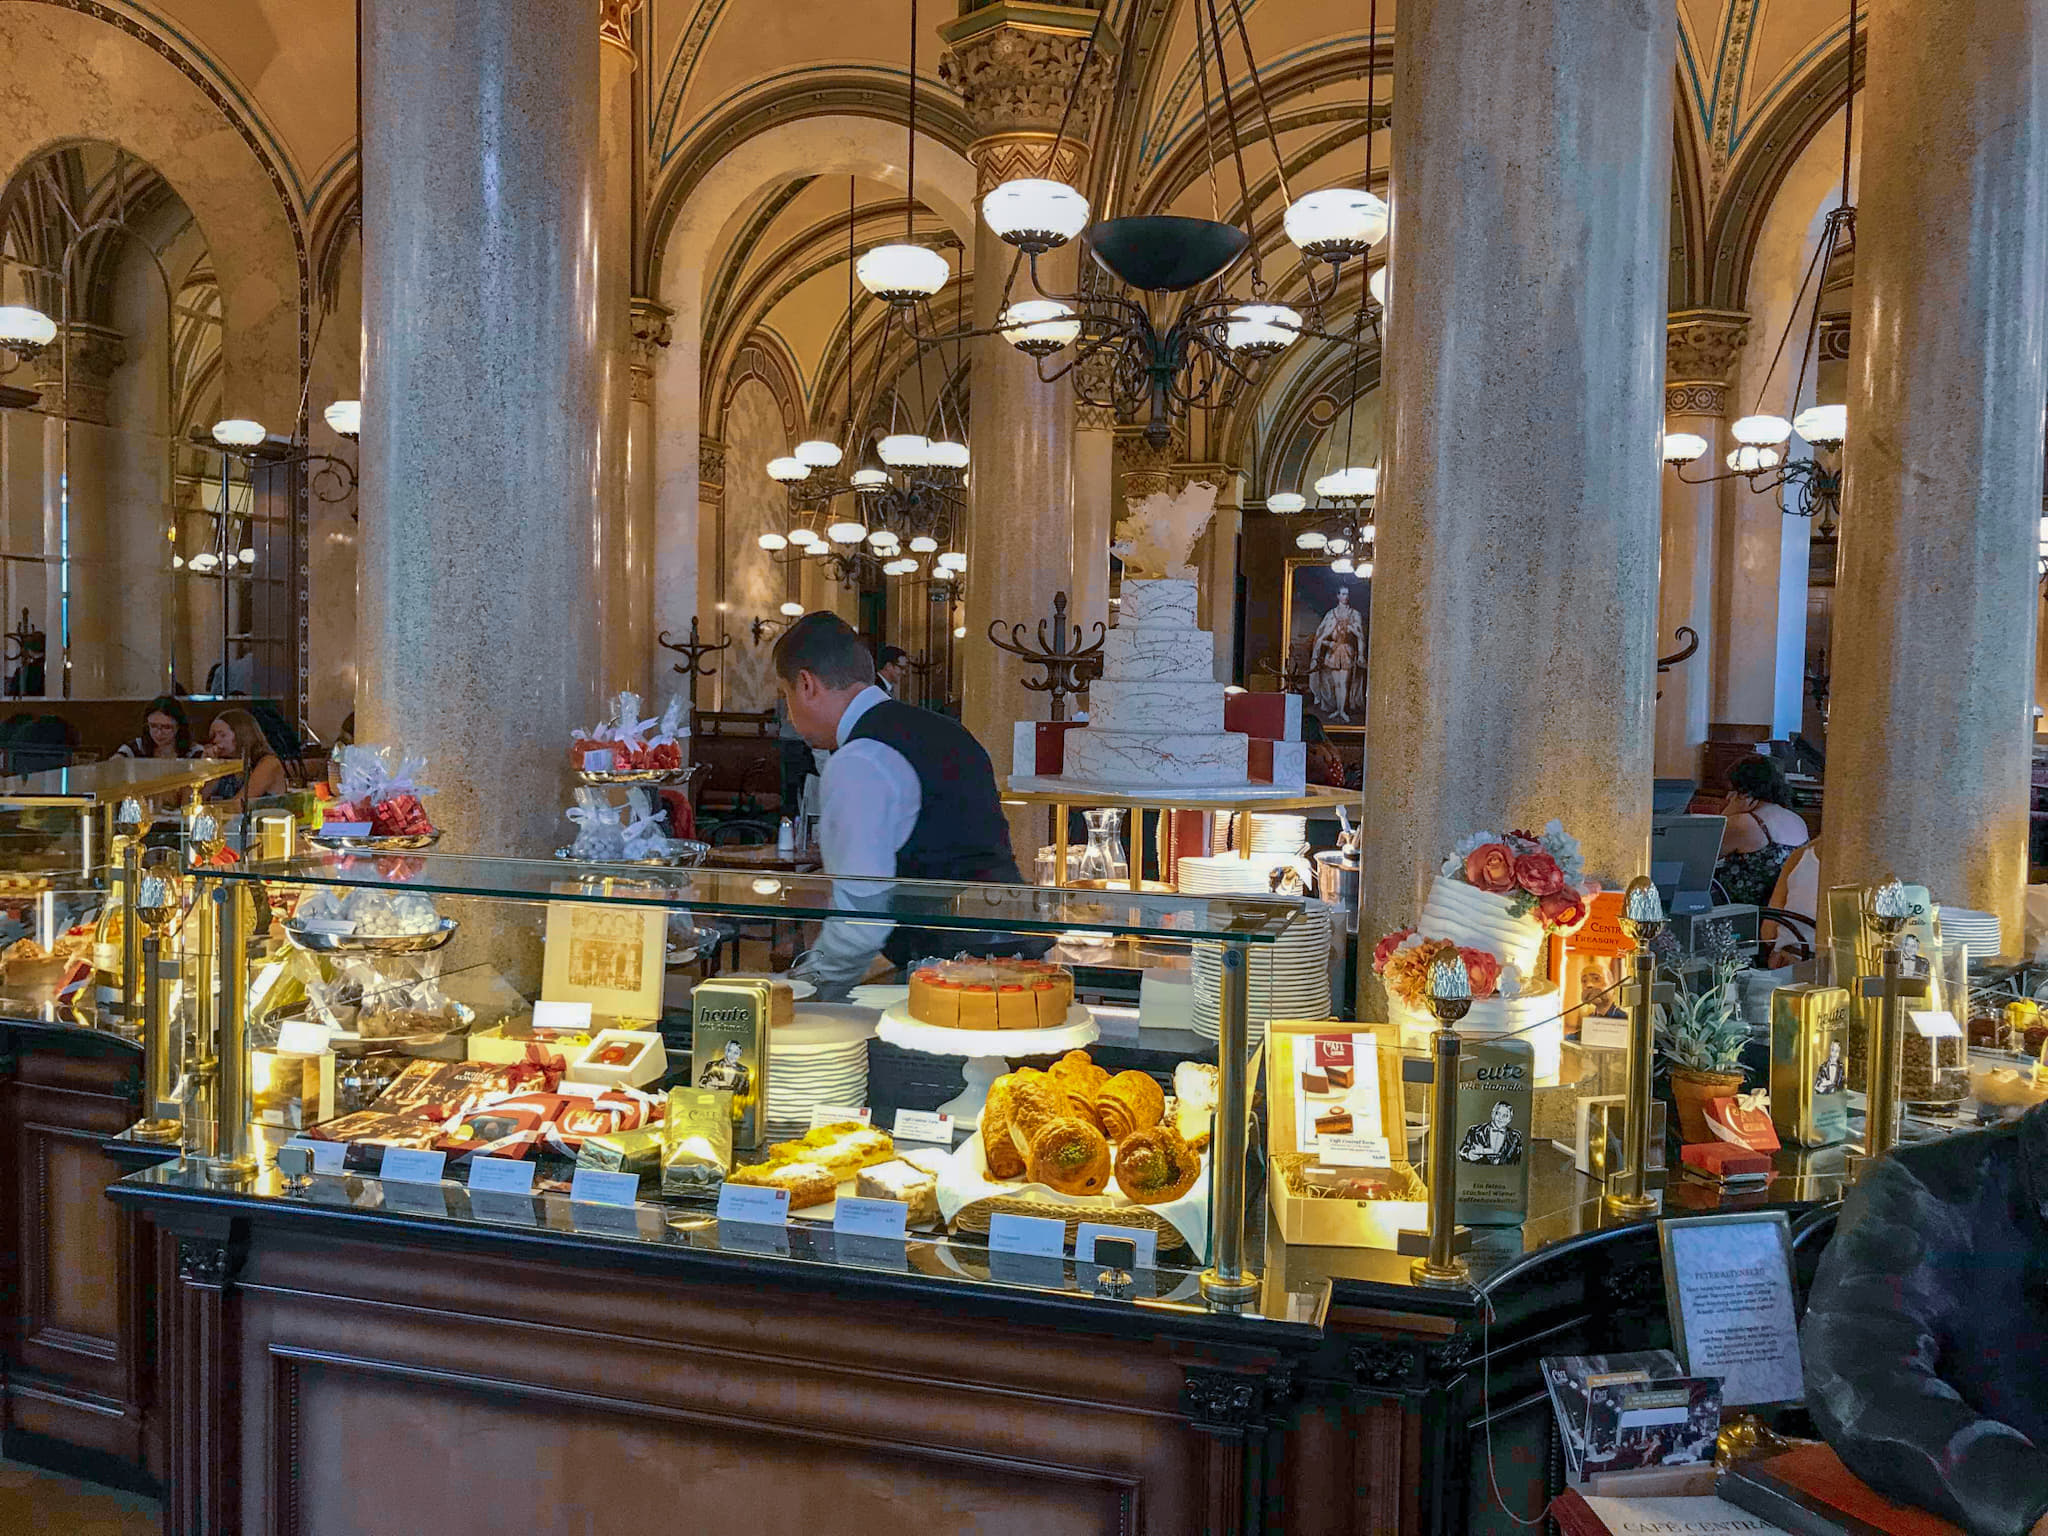 Cafe central Vienna cake selection